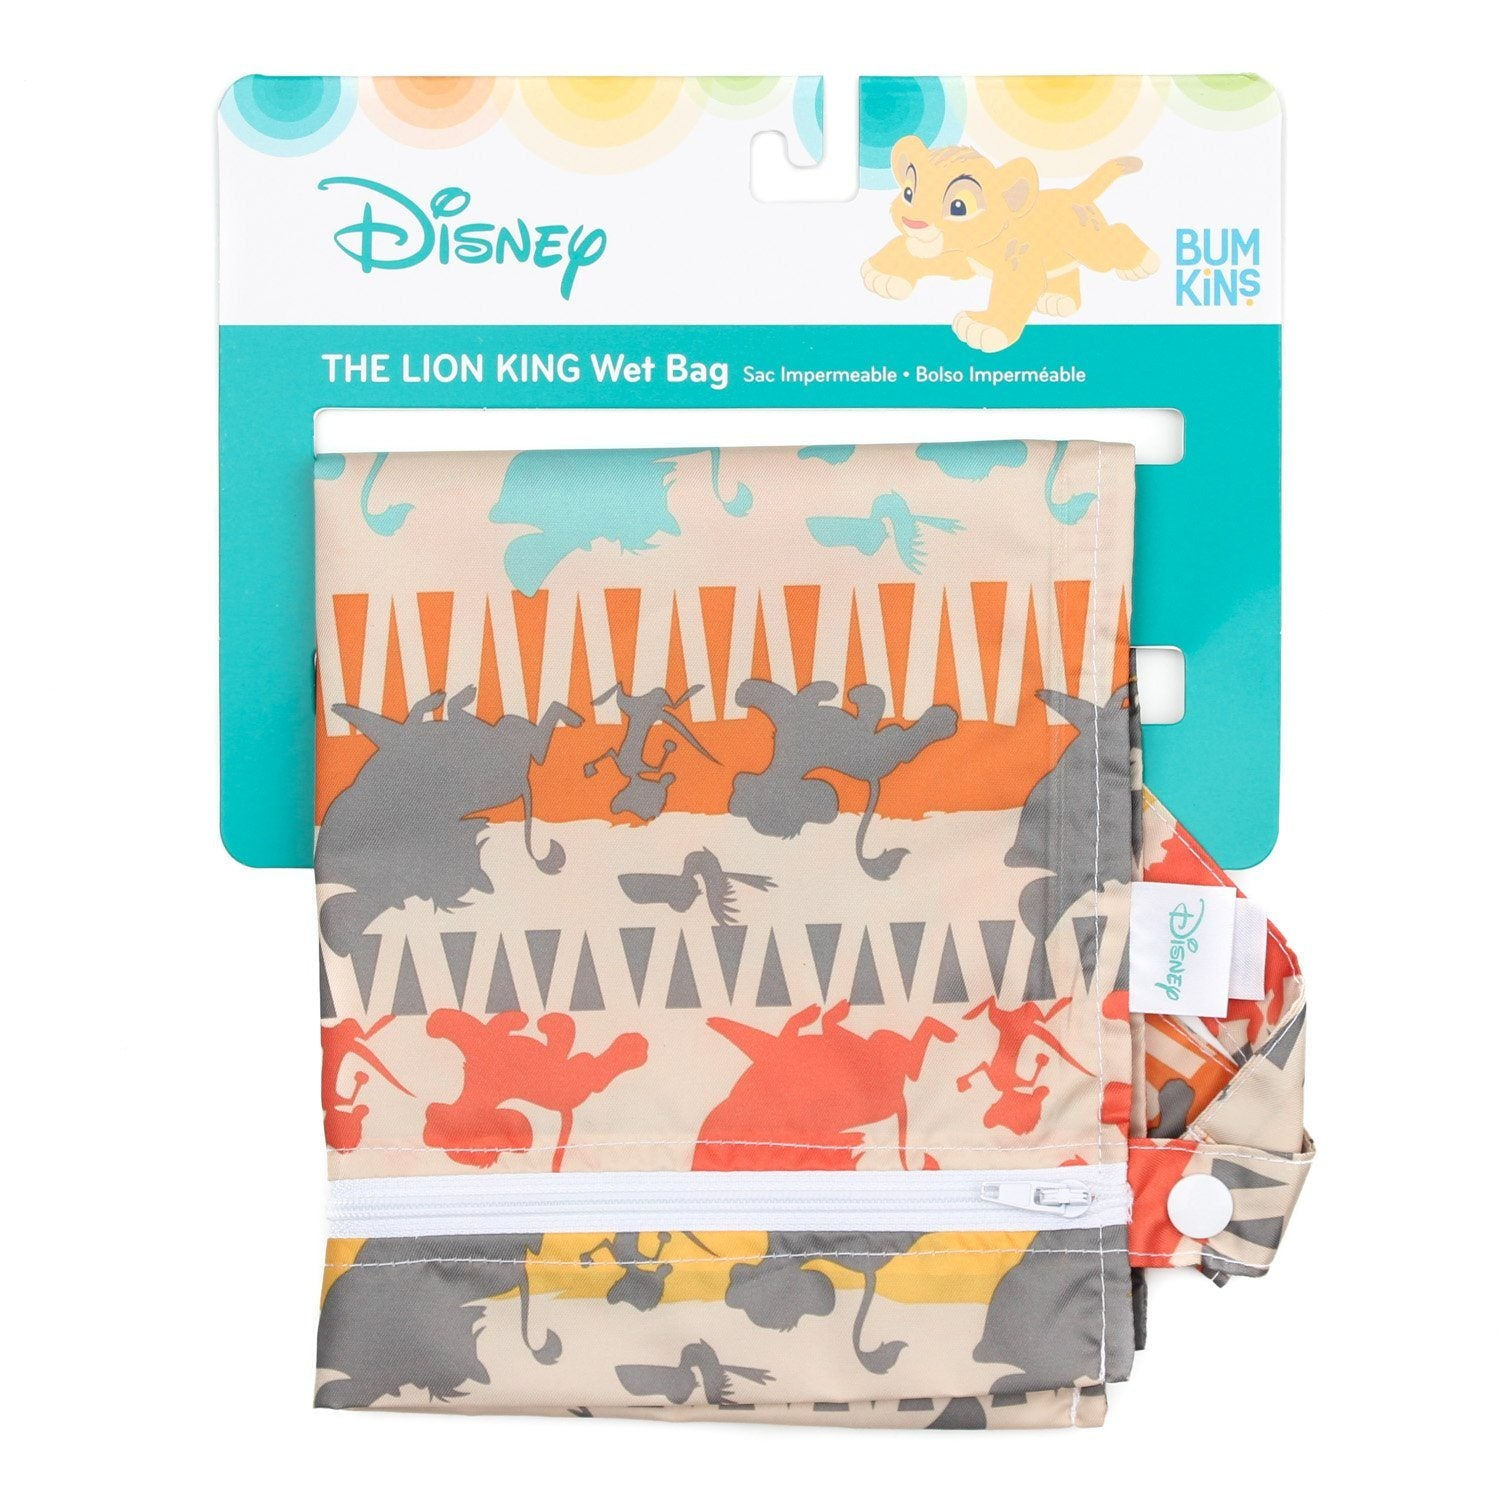 Disney Lion King Wet Bag - Three LiL Monkeys Three LiL Monkeys